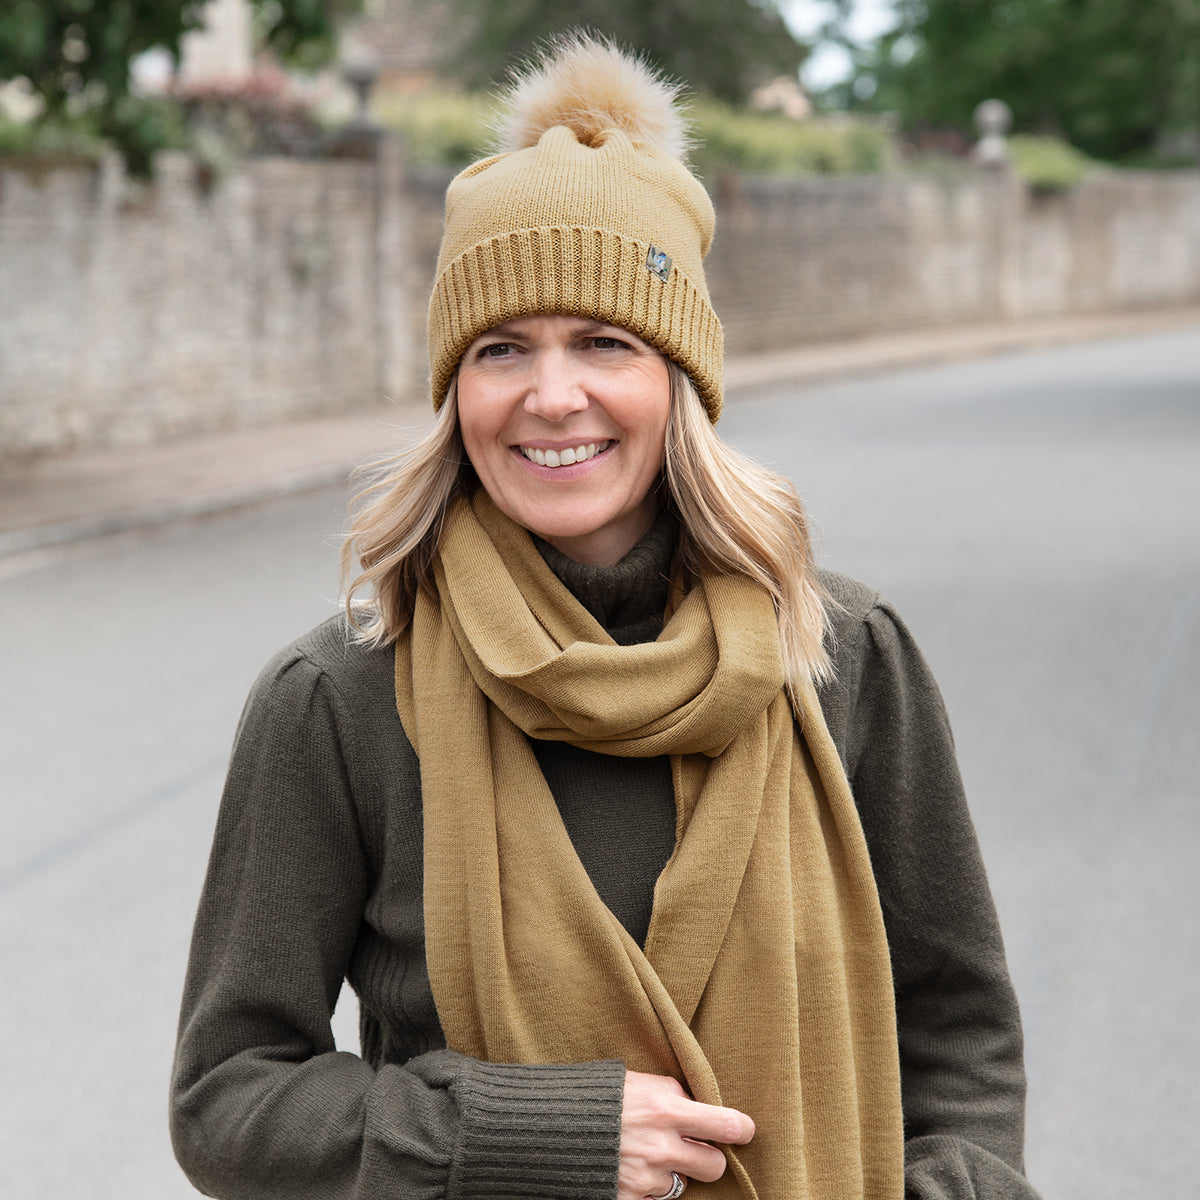 Ducks knitted hat with pom pom by Sophie Allport